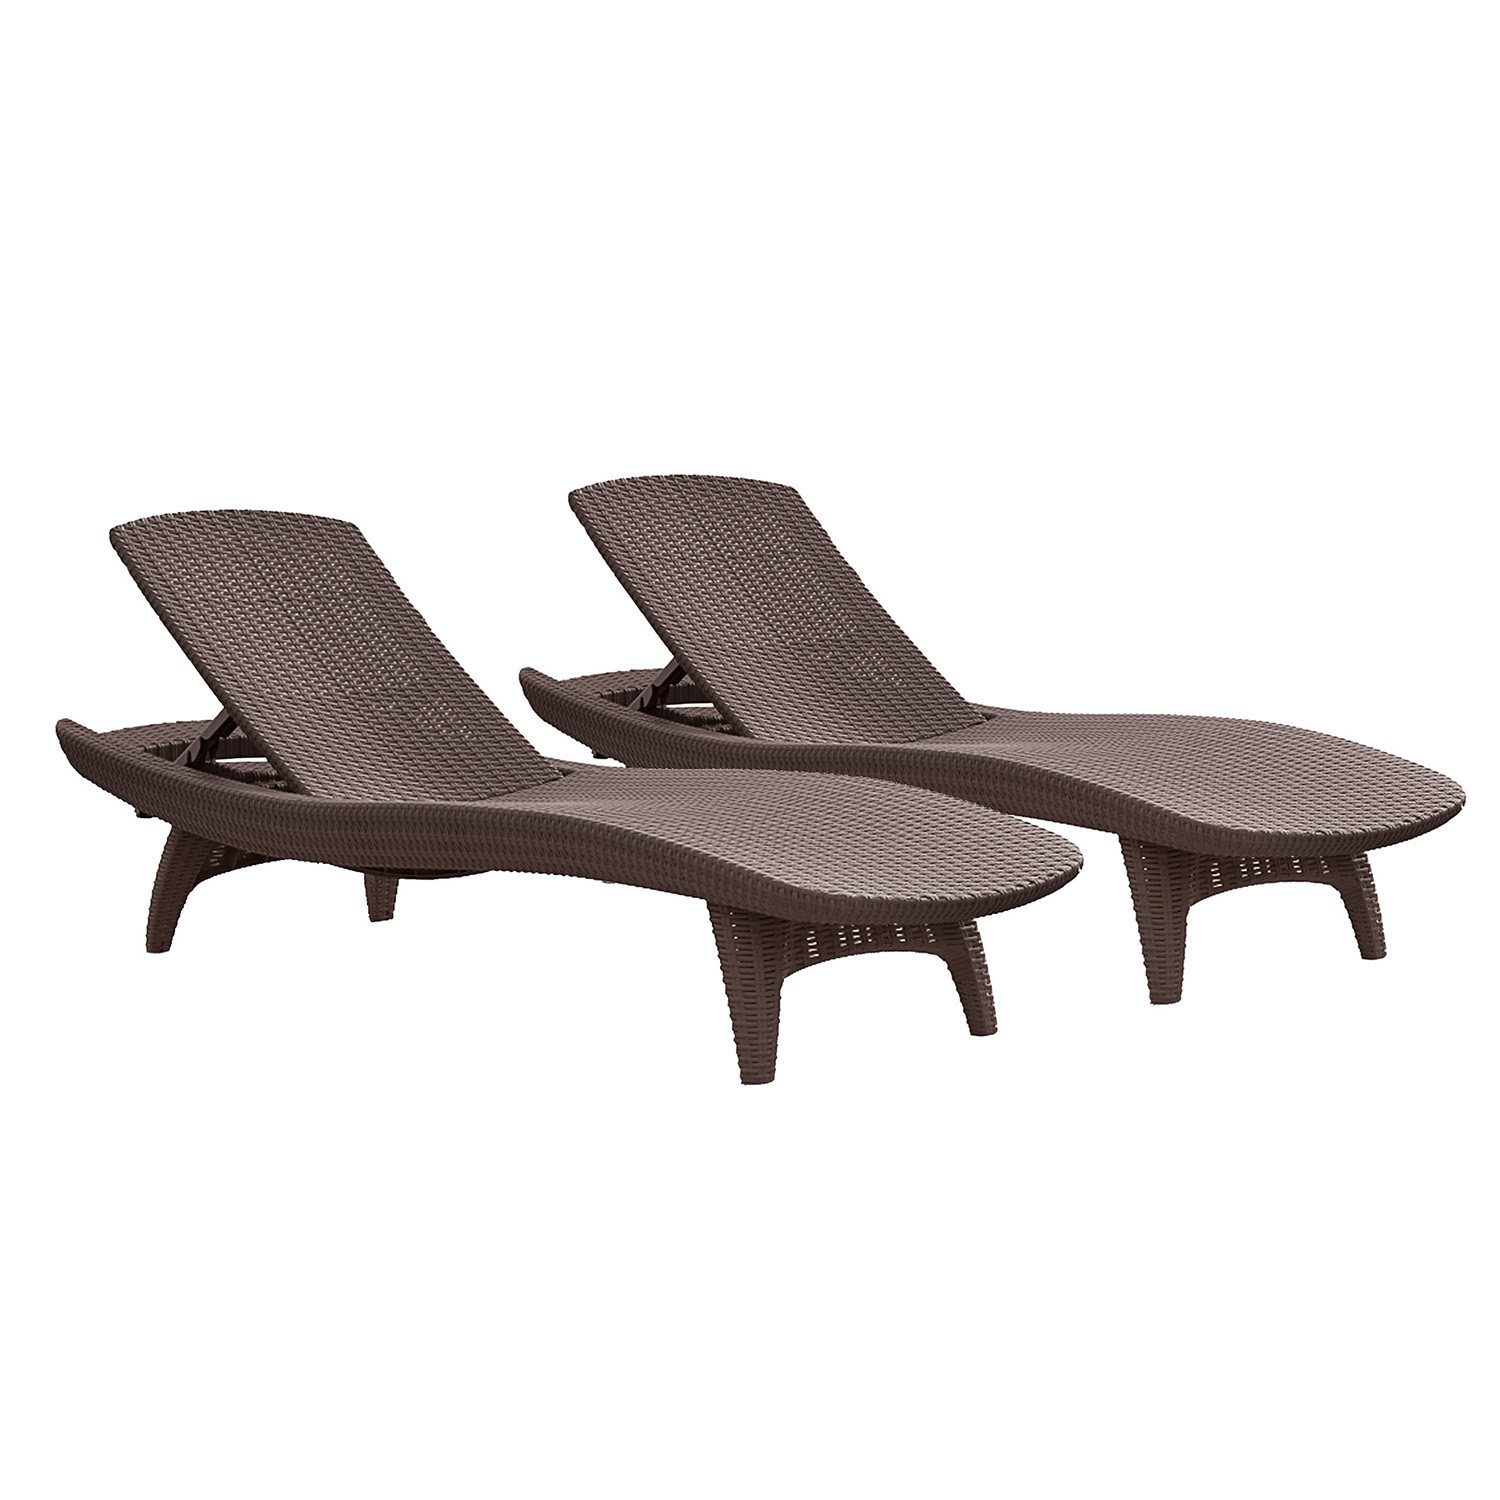 Rattan Chaise Lounge Brown Chair Pool Patio Deck Outdoor Furniture Set 2 Pk N